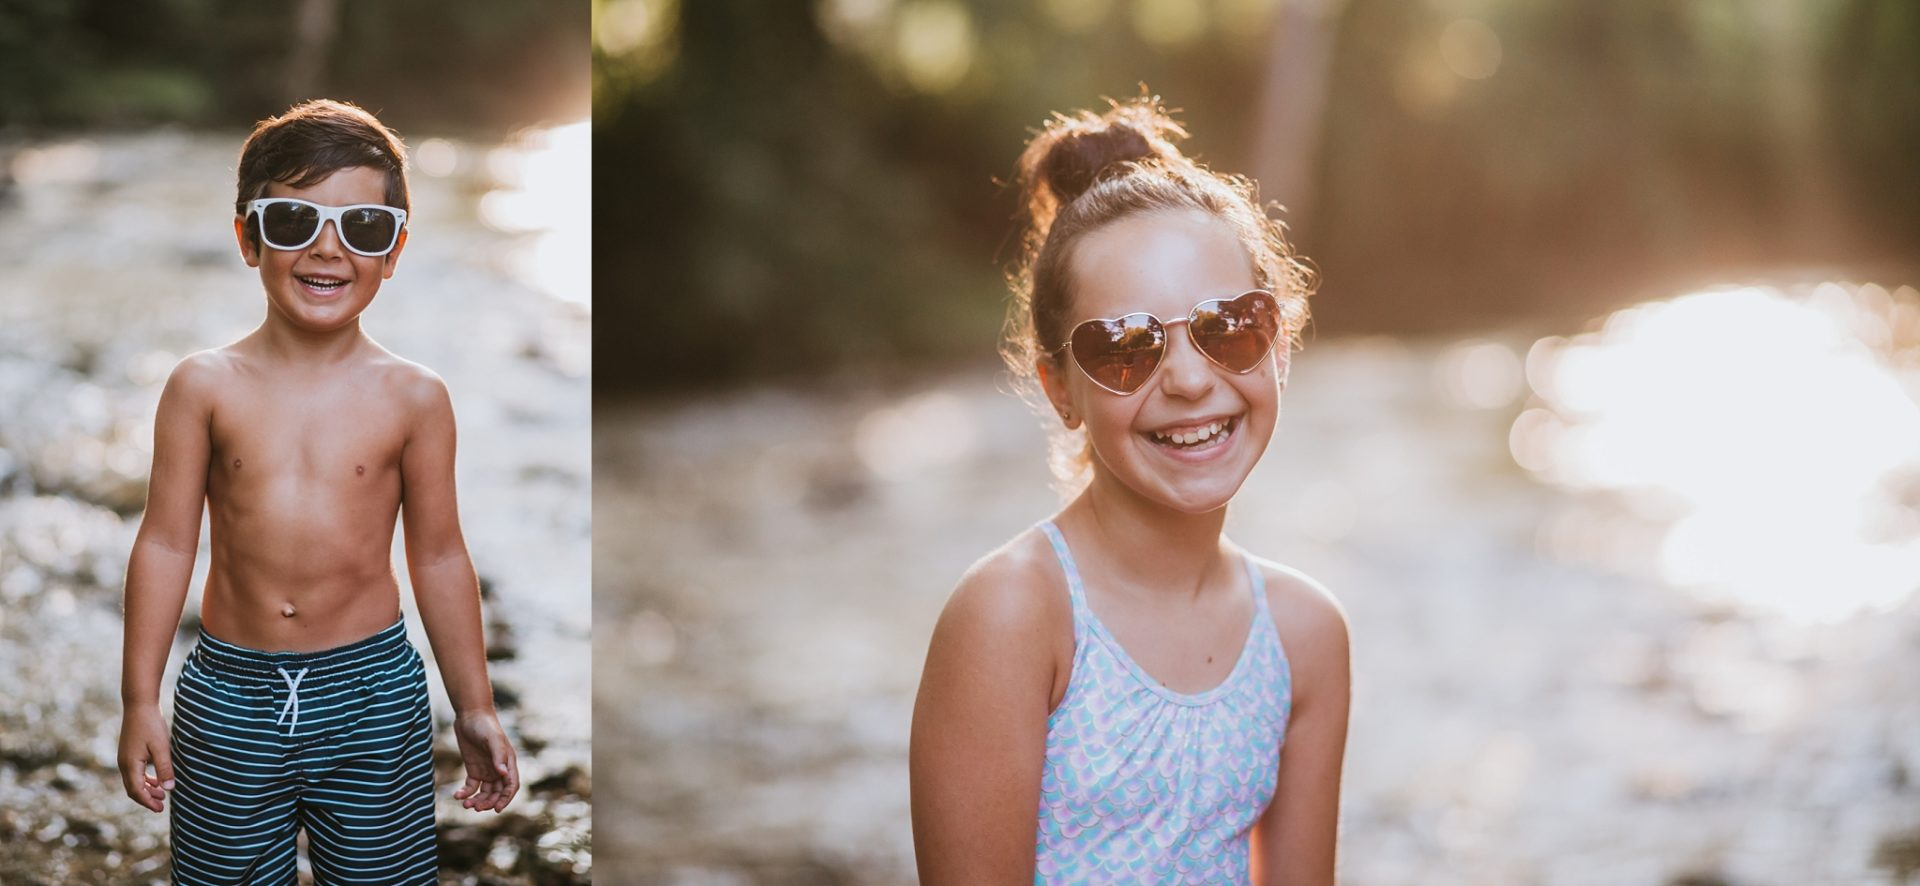 Outdoor Photo Session | Potomac MD Baby and Family Photographer